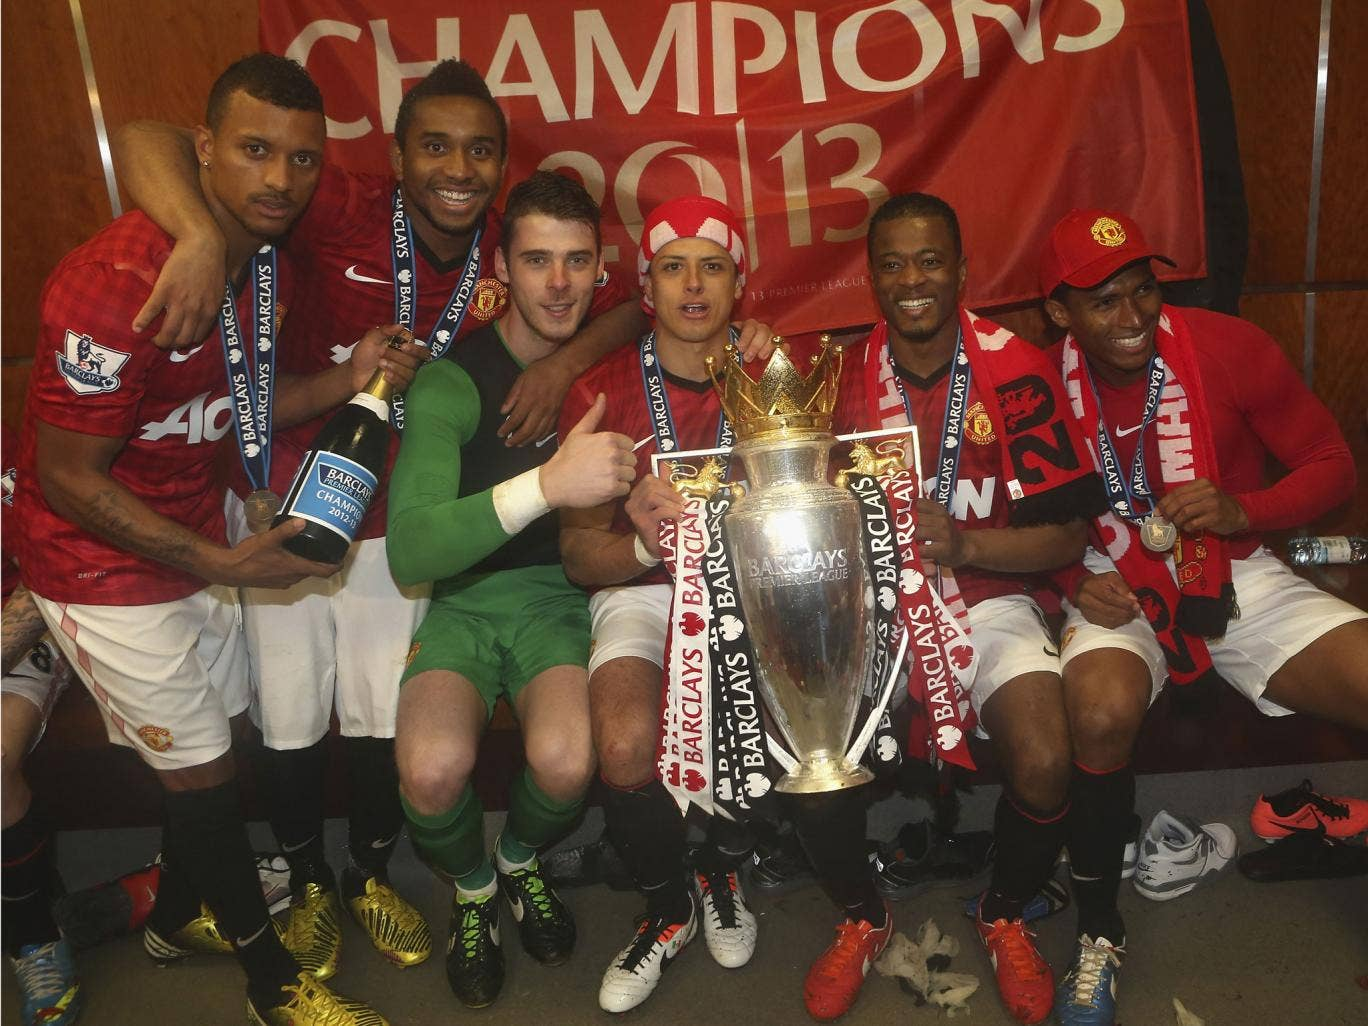 Champions Manchester United will be looking closely at the fixture list as they prepare to defend their title